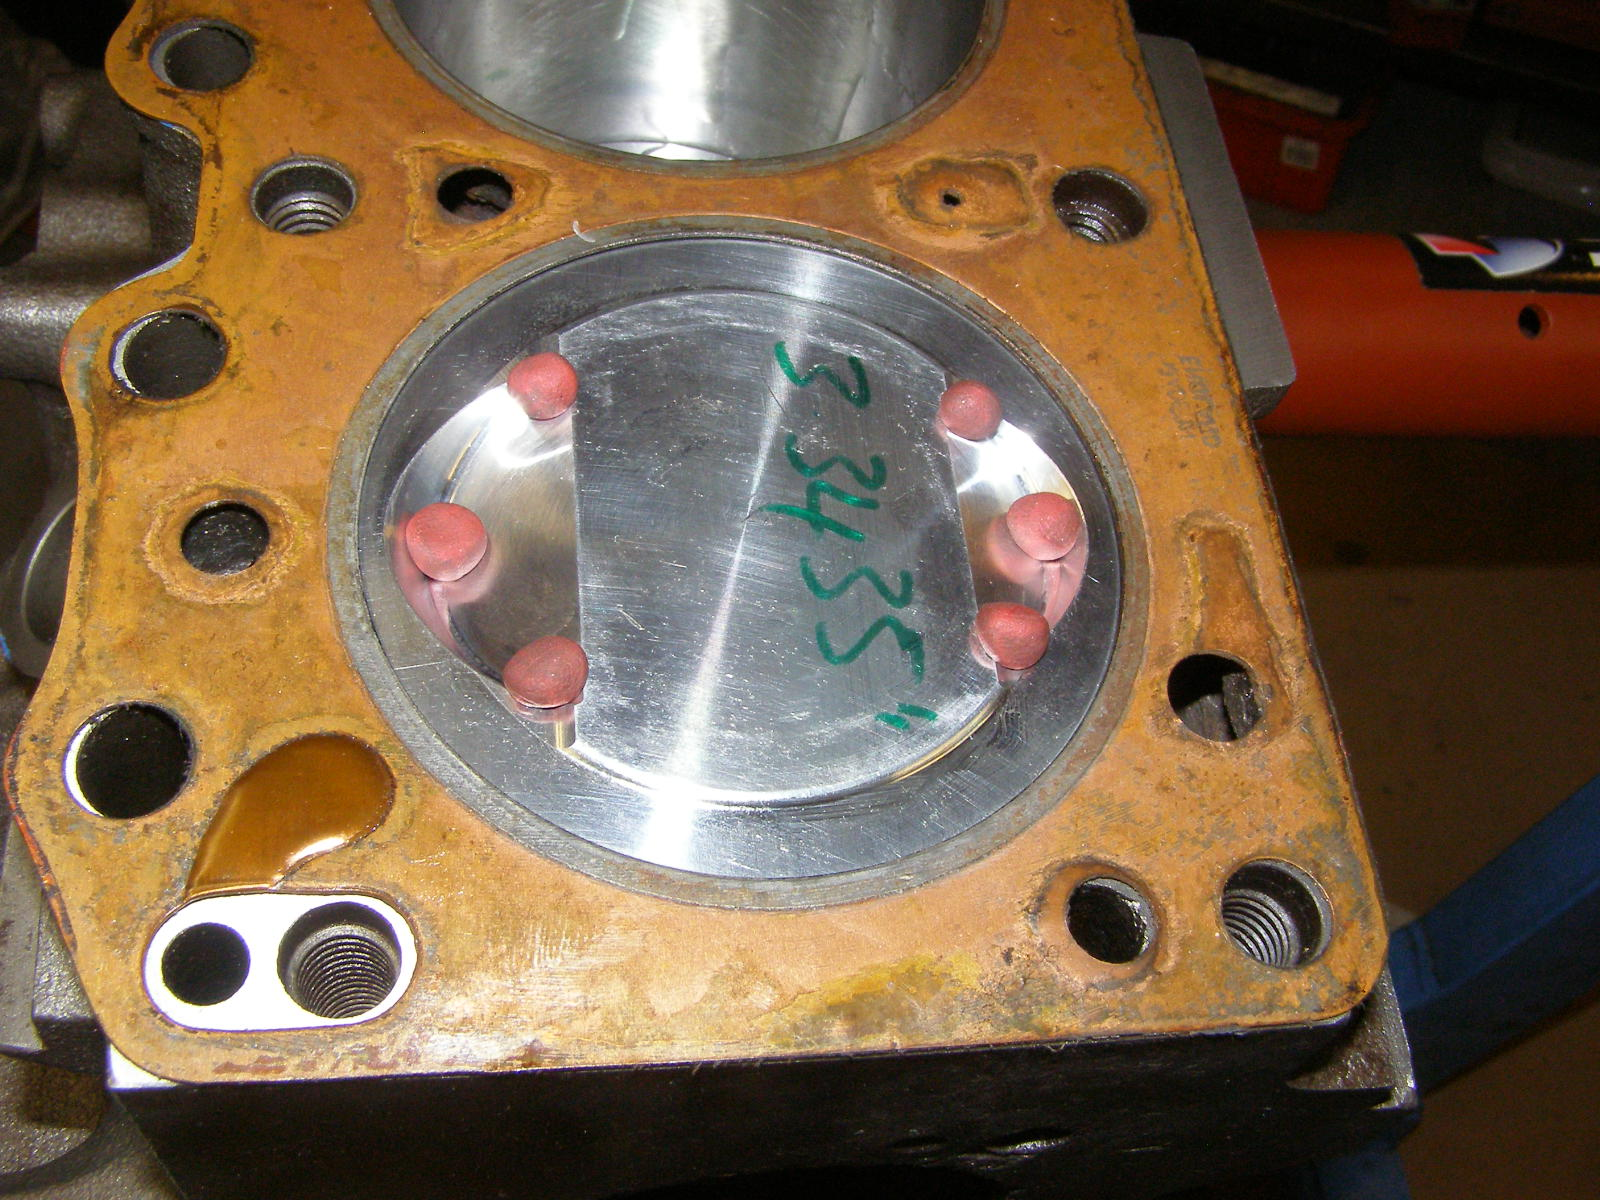 Clay blobs waiting patiently to be squashed during valve to piston clearance check...